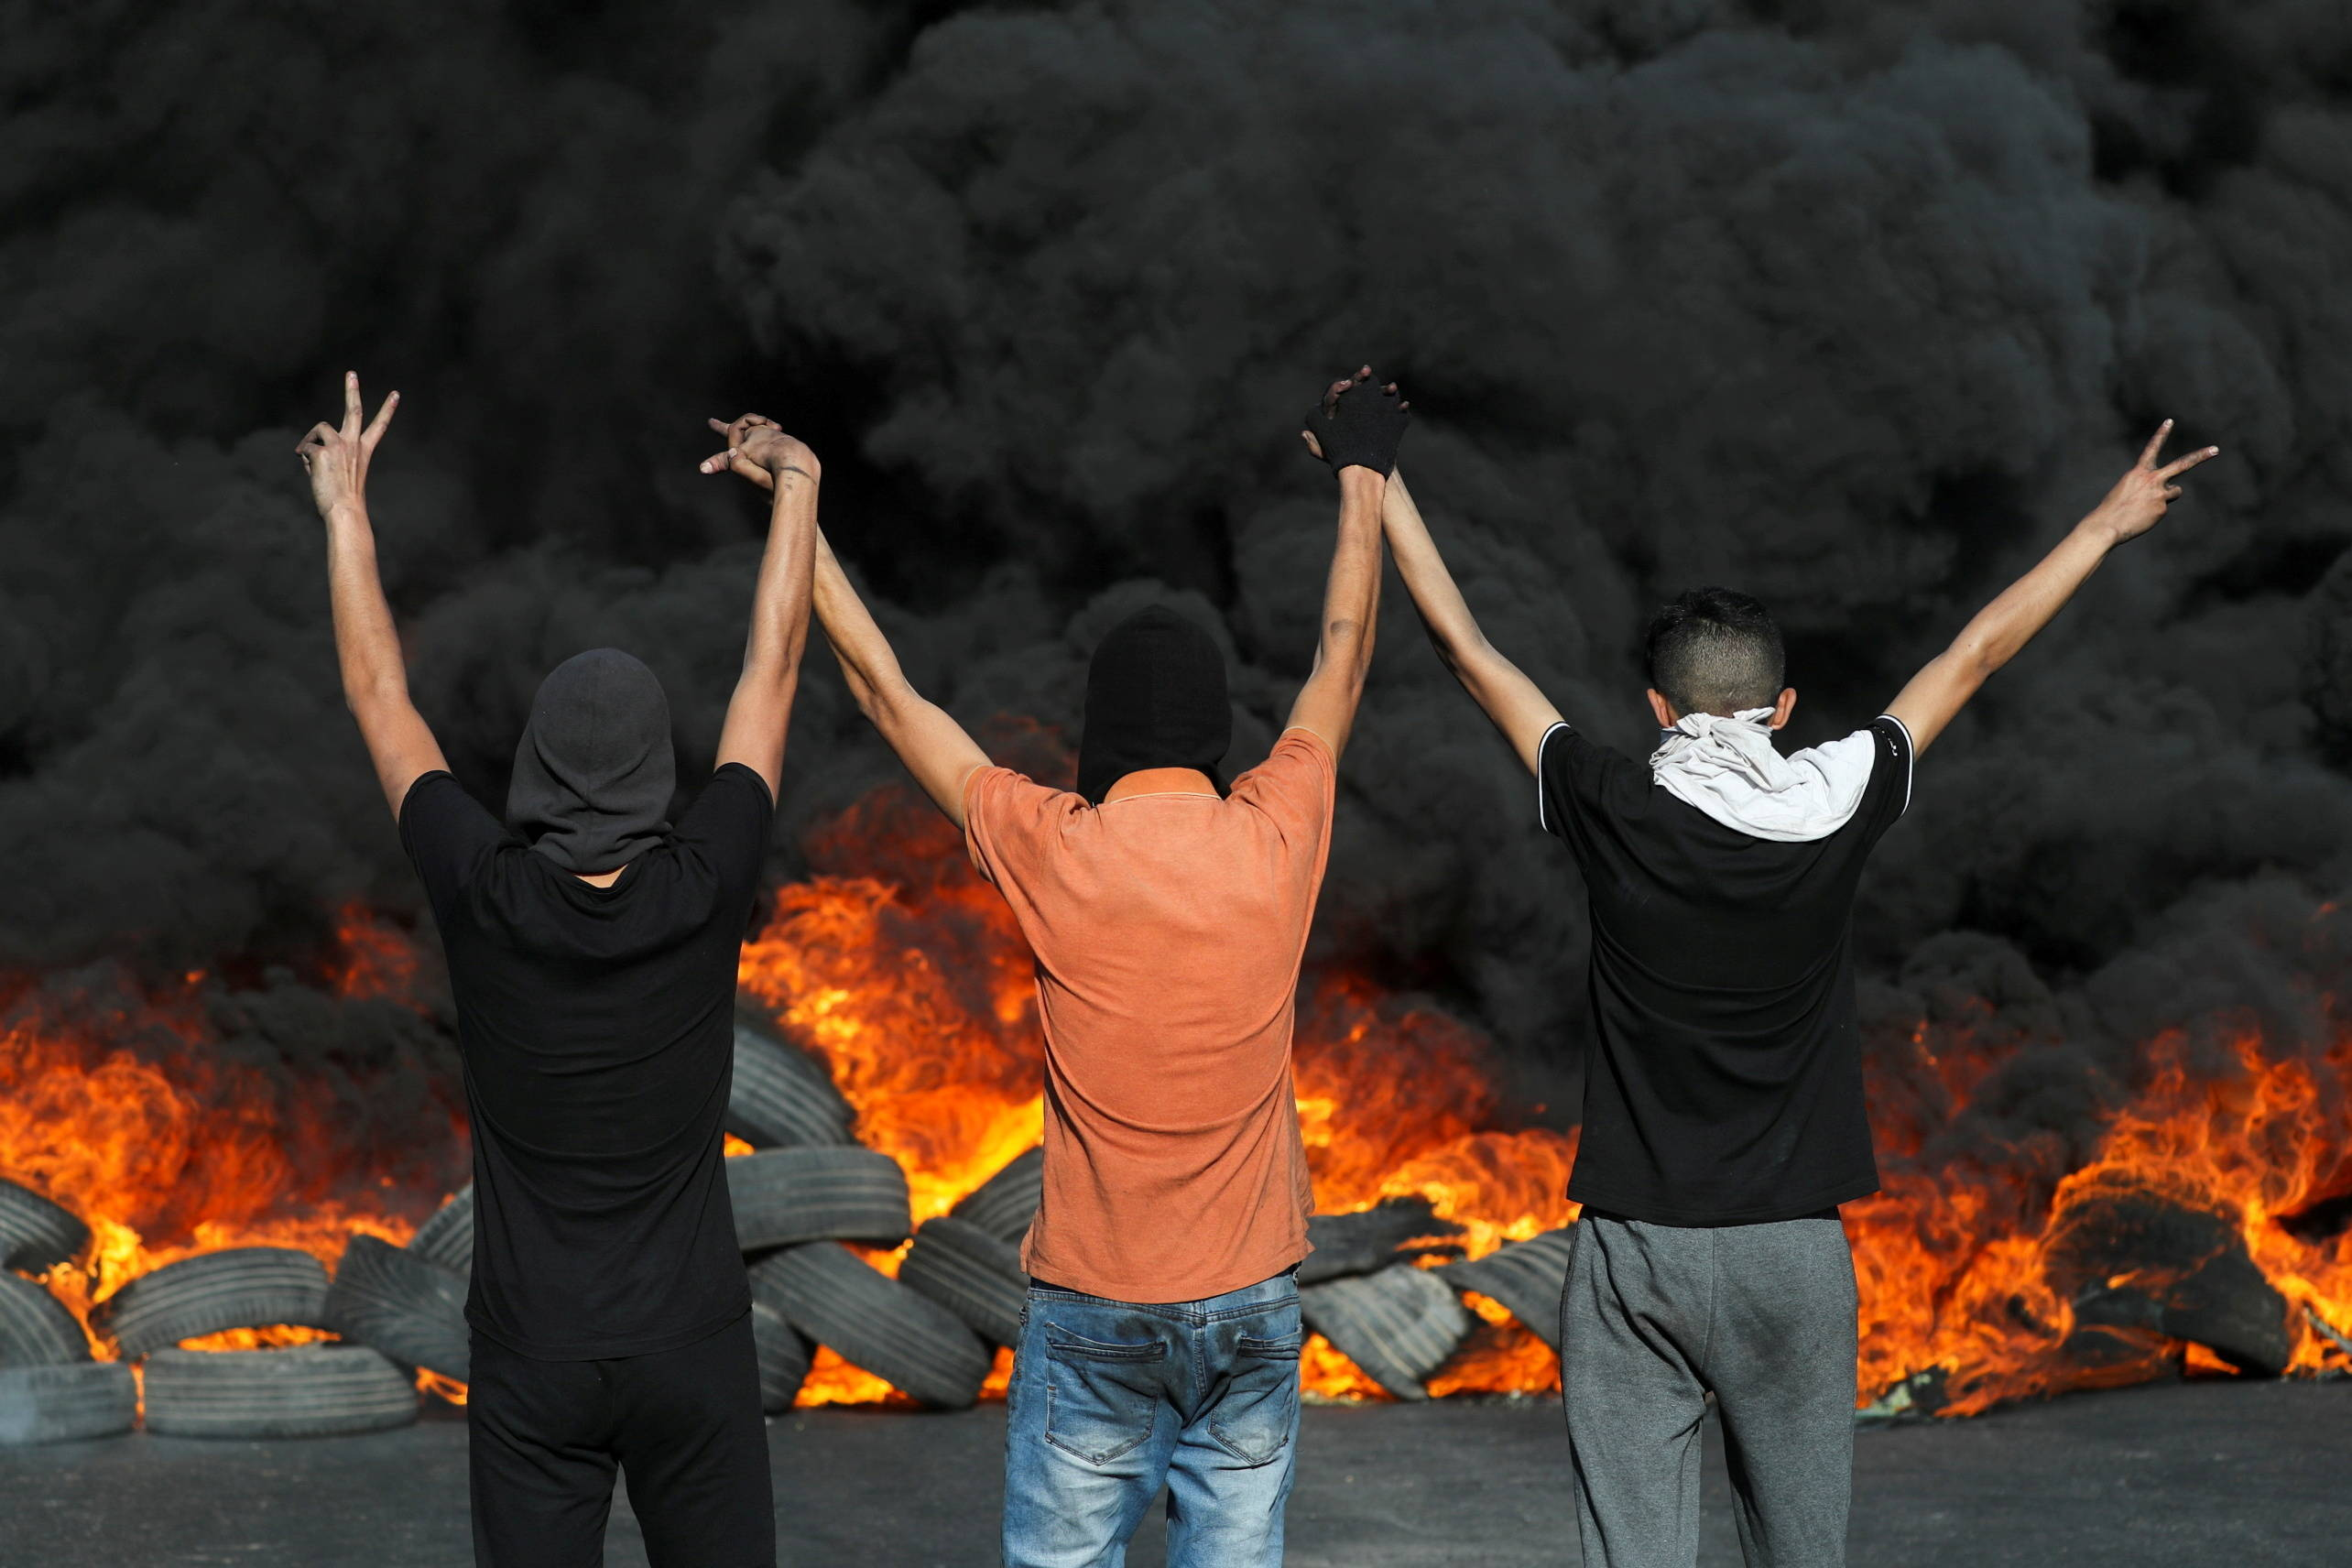 Palestinian demonstrators look at burning tires during a protest in the Israeli-occupied West Bank. (Reuters/Ammar Awad)